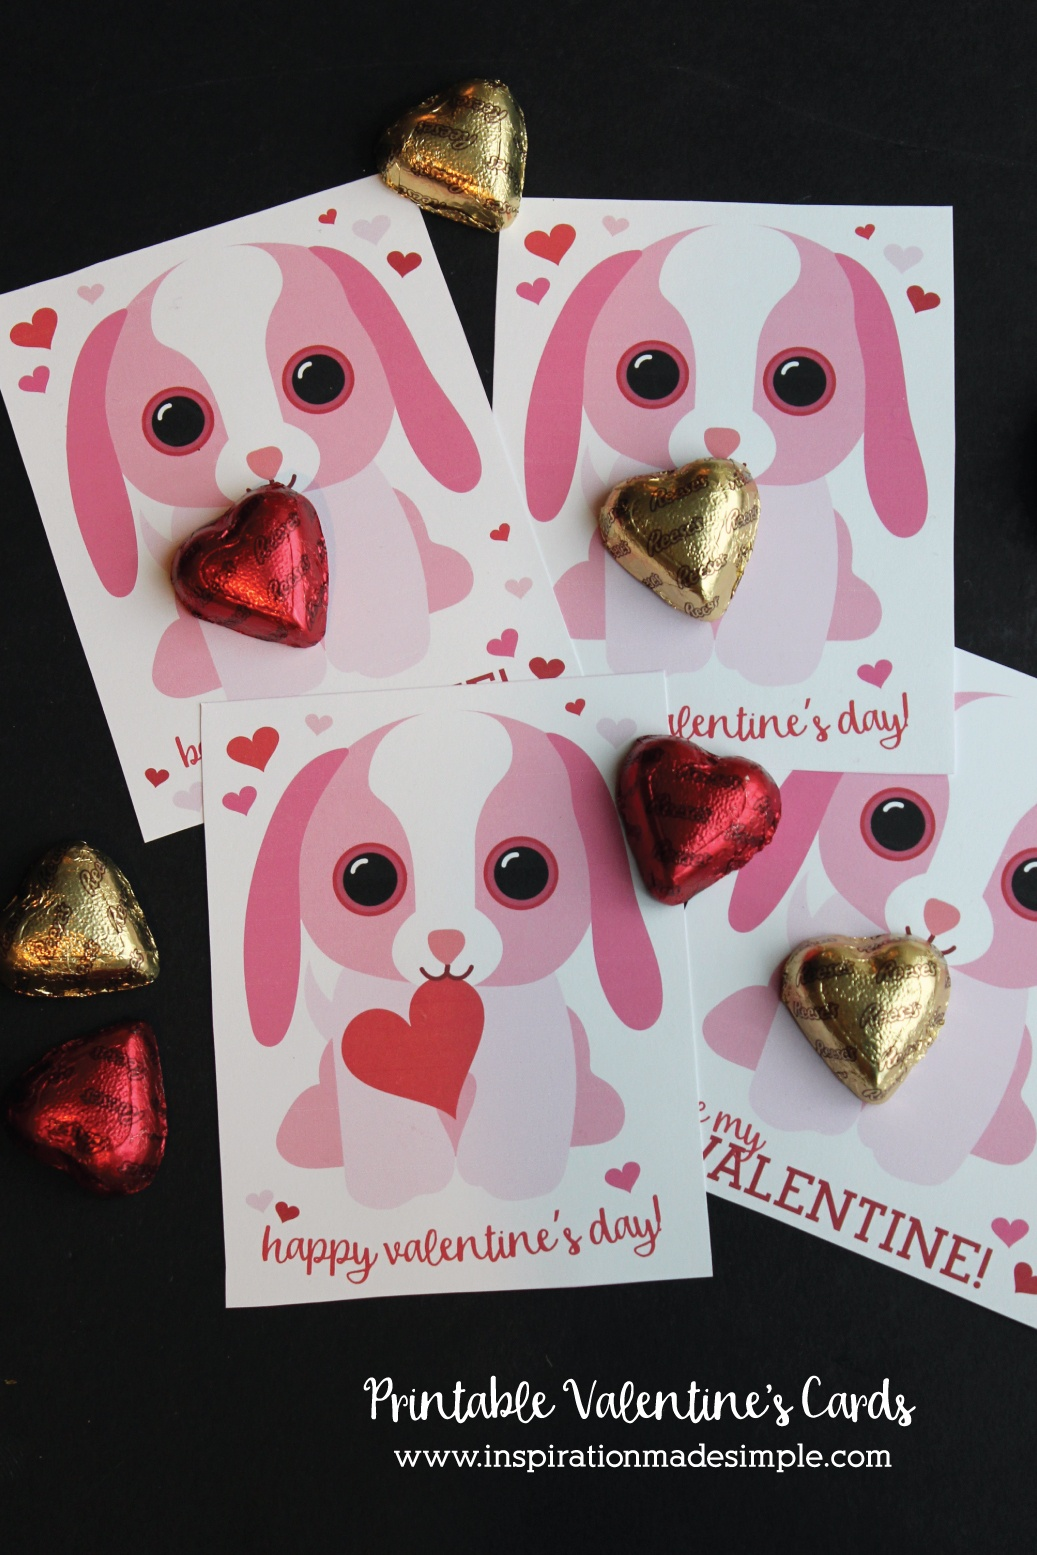 Printable Puppy Valentine's Day Cards - Inspiration Made Simple - Free Printable Dog Valentines Day Cards